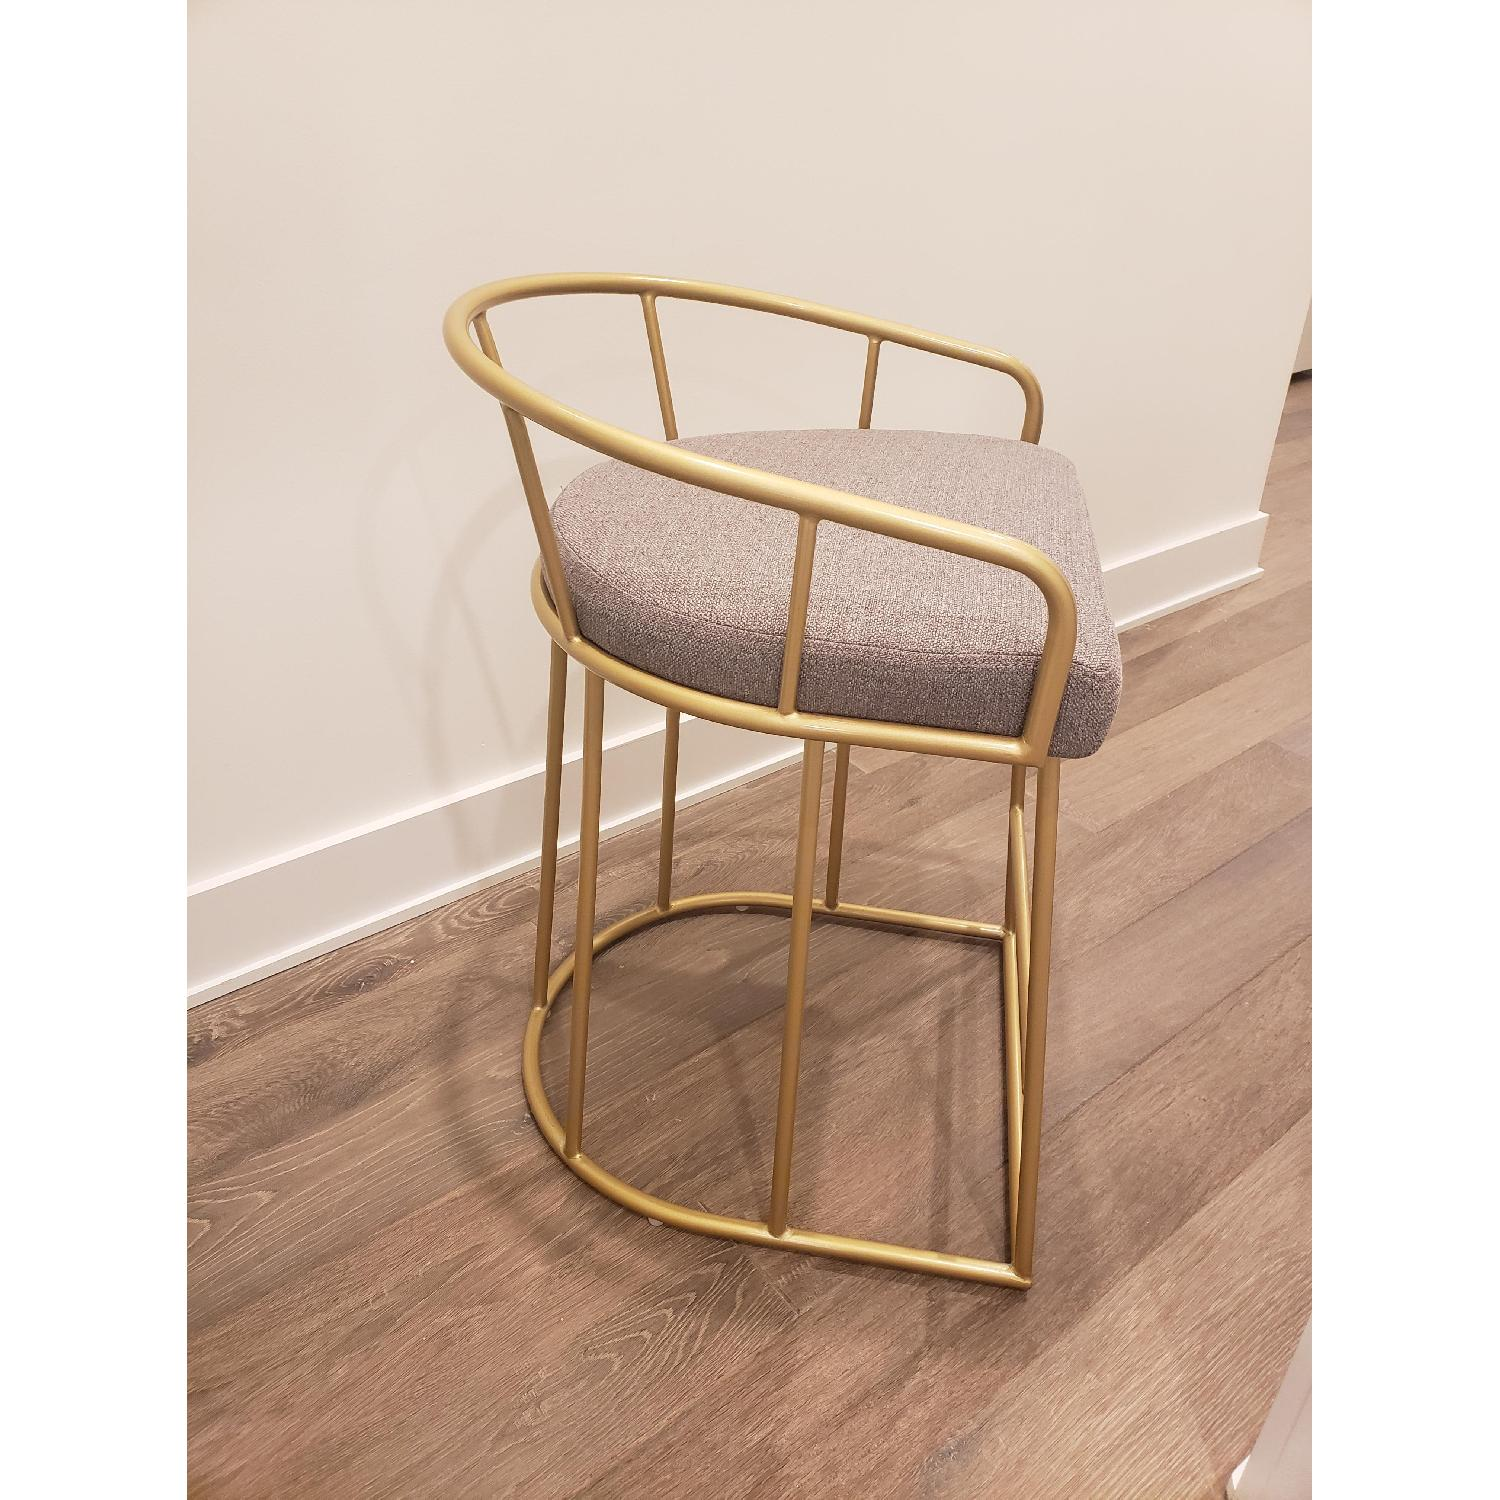 Macy's Gold Tone Upholstered Counter Stools - image-3